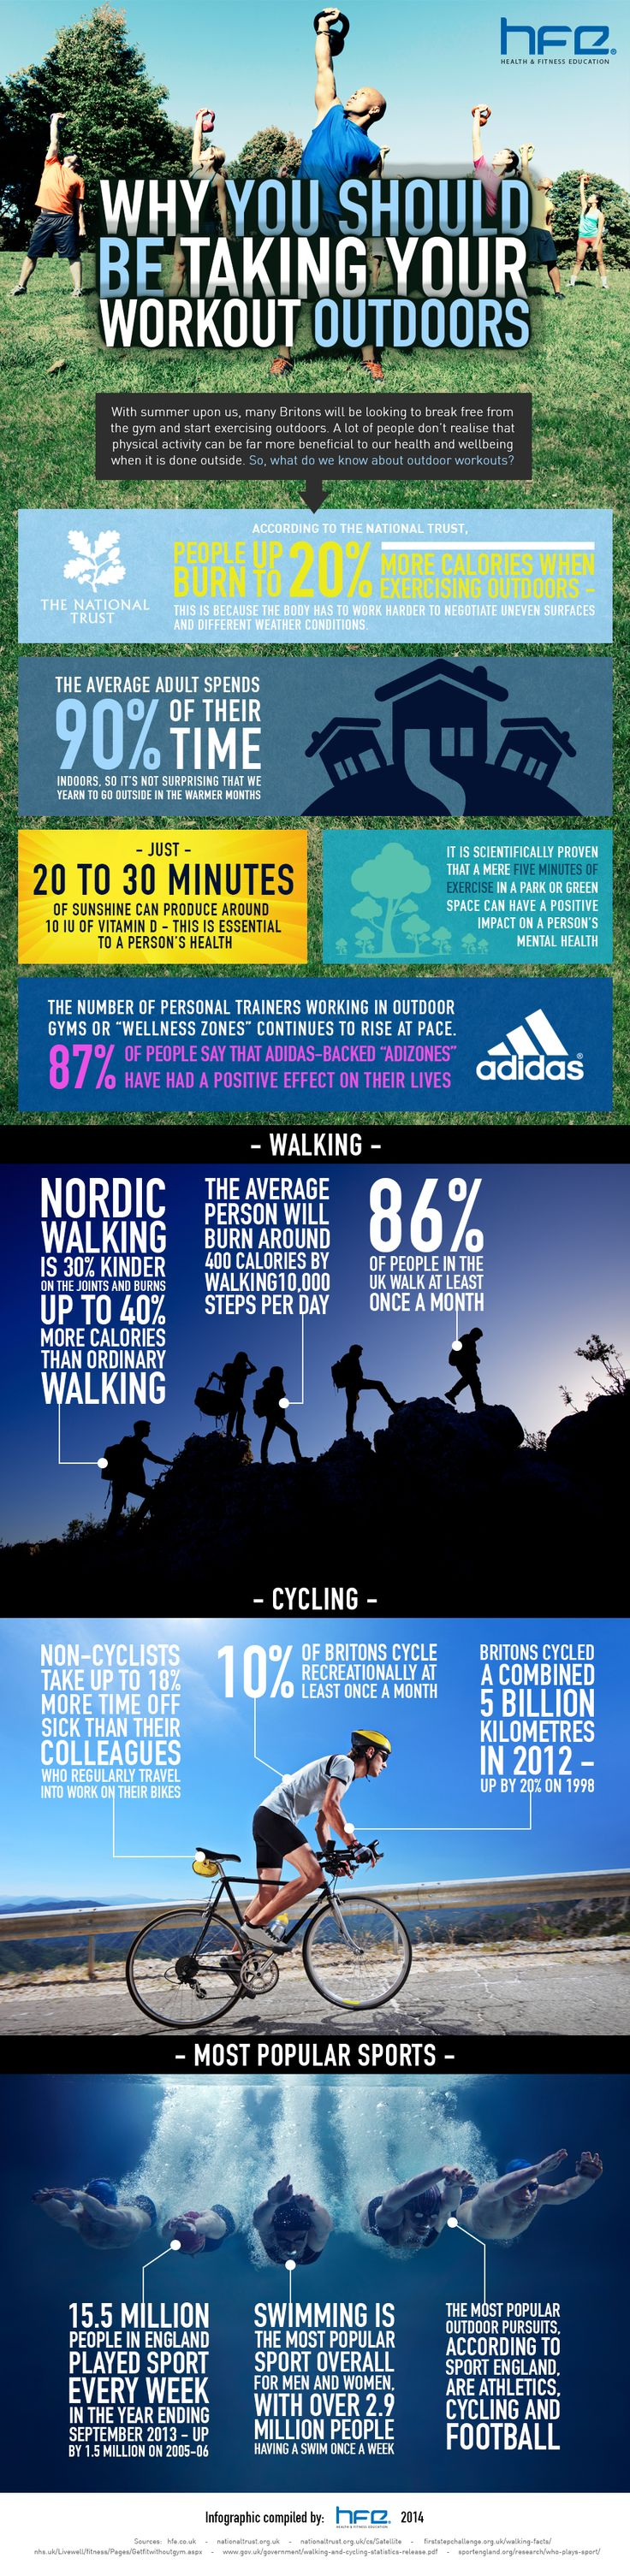 Why You Should Be Taking Your Workout Outdoors (With